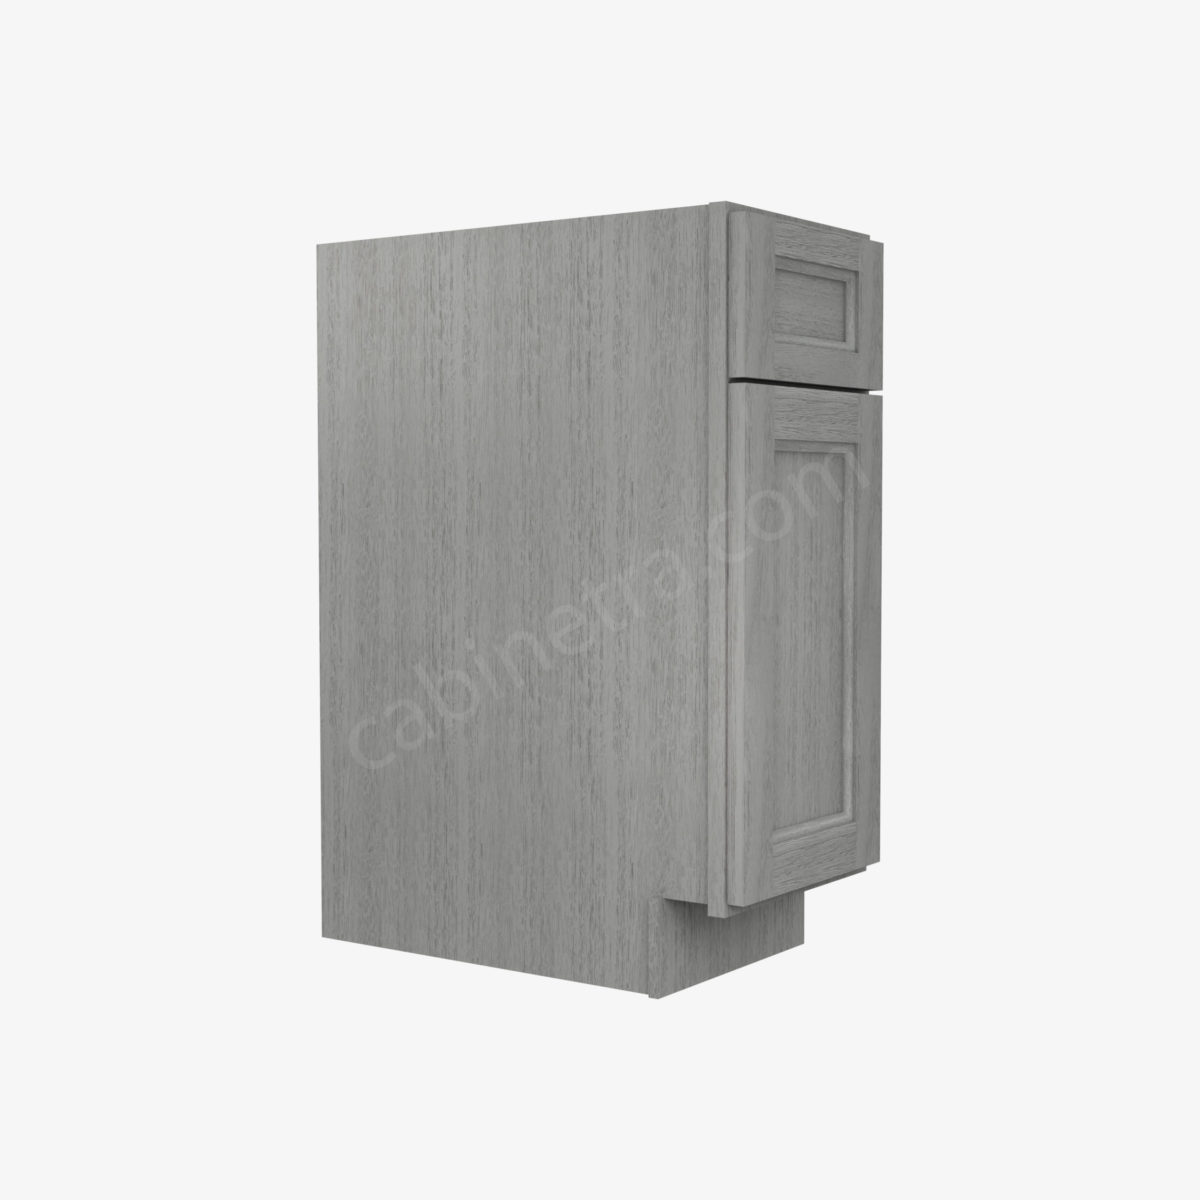 TG B12 4 Forevermark Midtown Grey Cabinetra scaled